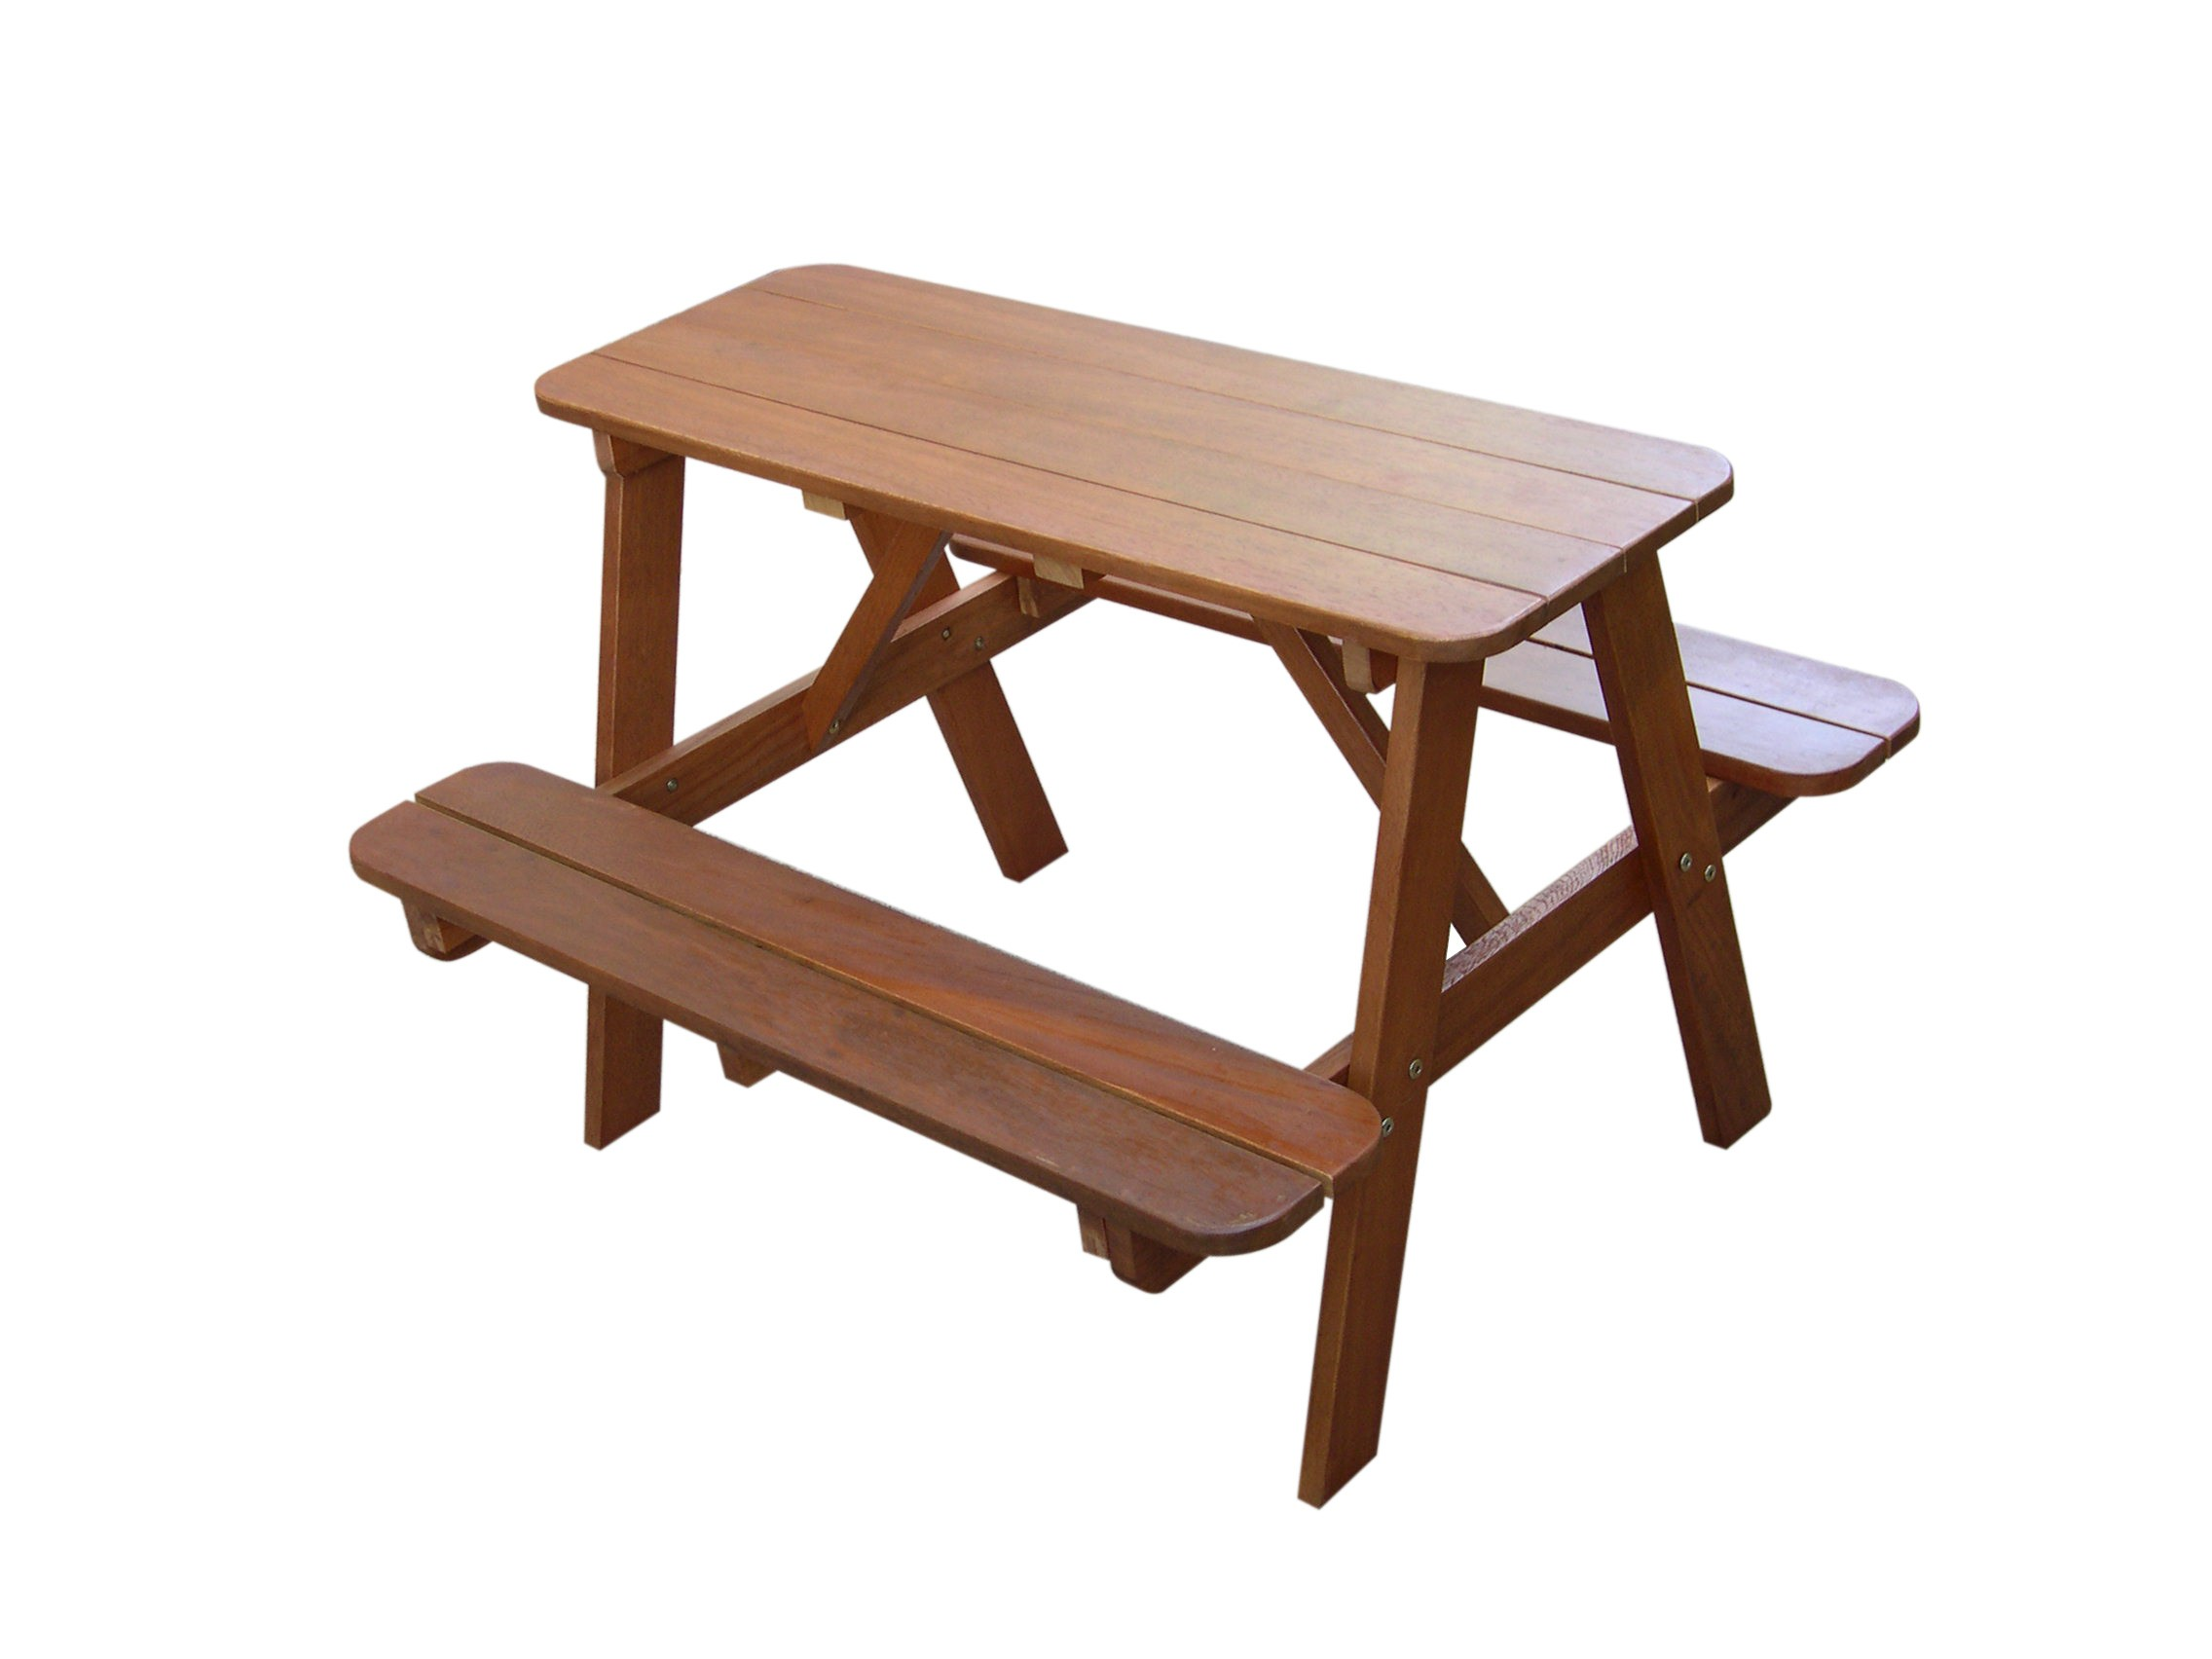 Furniture clipart wooden table Patio Garden Outside Cliparts Zone